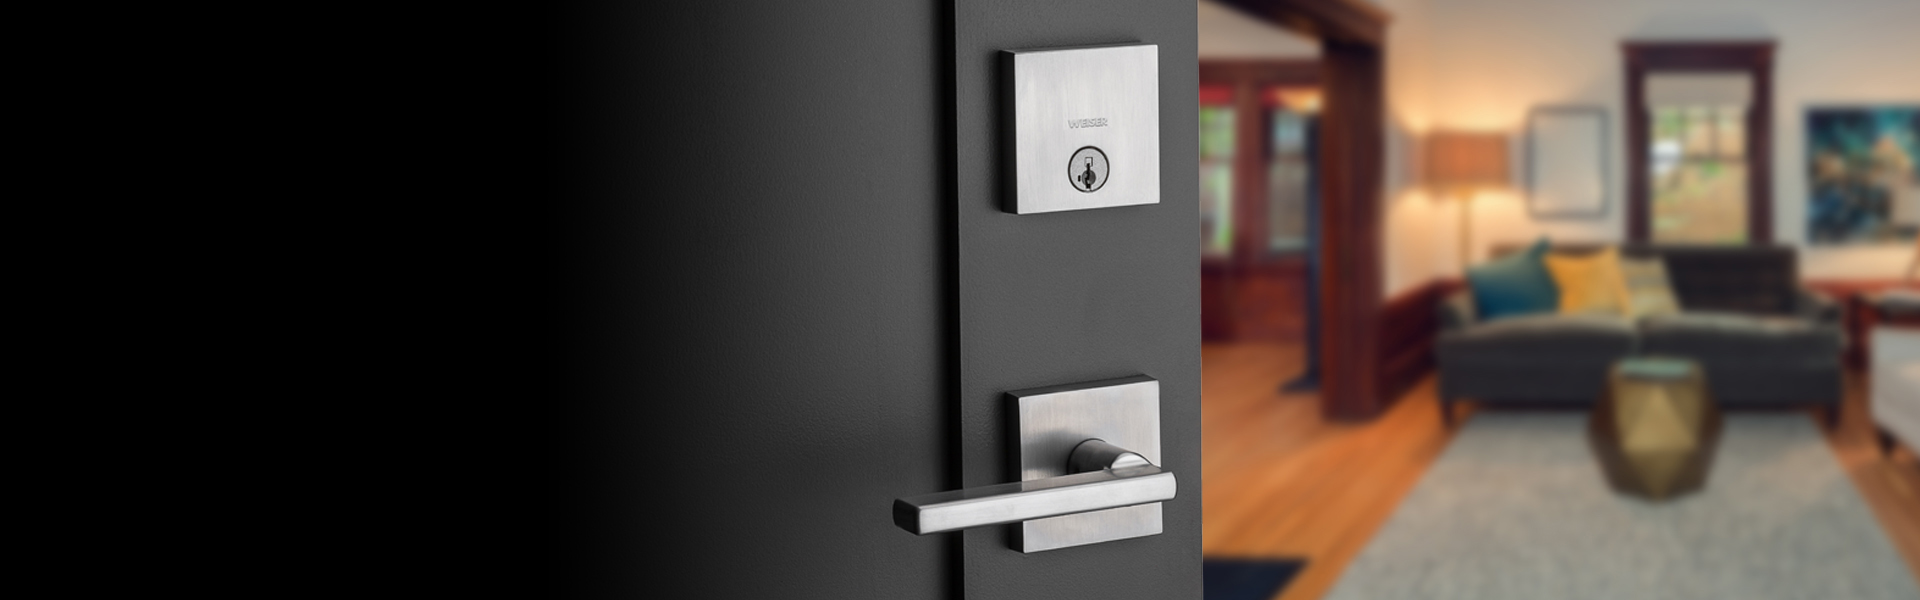 Downtown deadbolt featuring SmartKey in satin nickel with Halifax lever in satin nickel leading into a living room